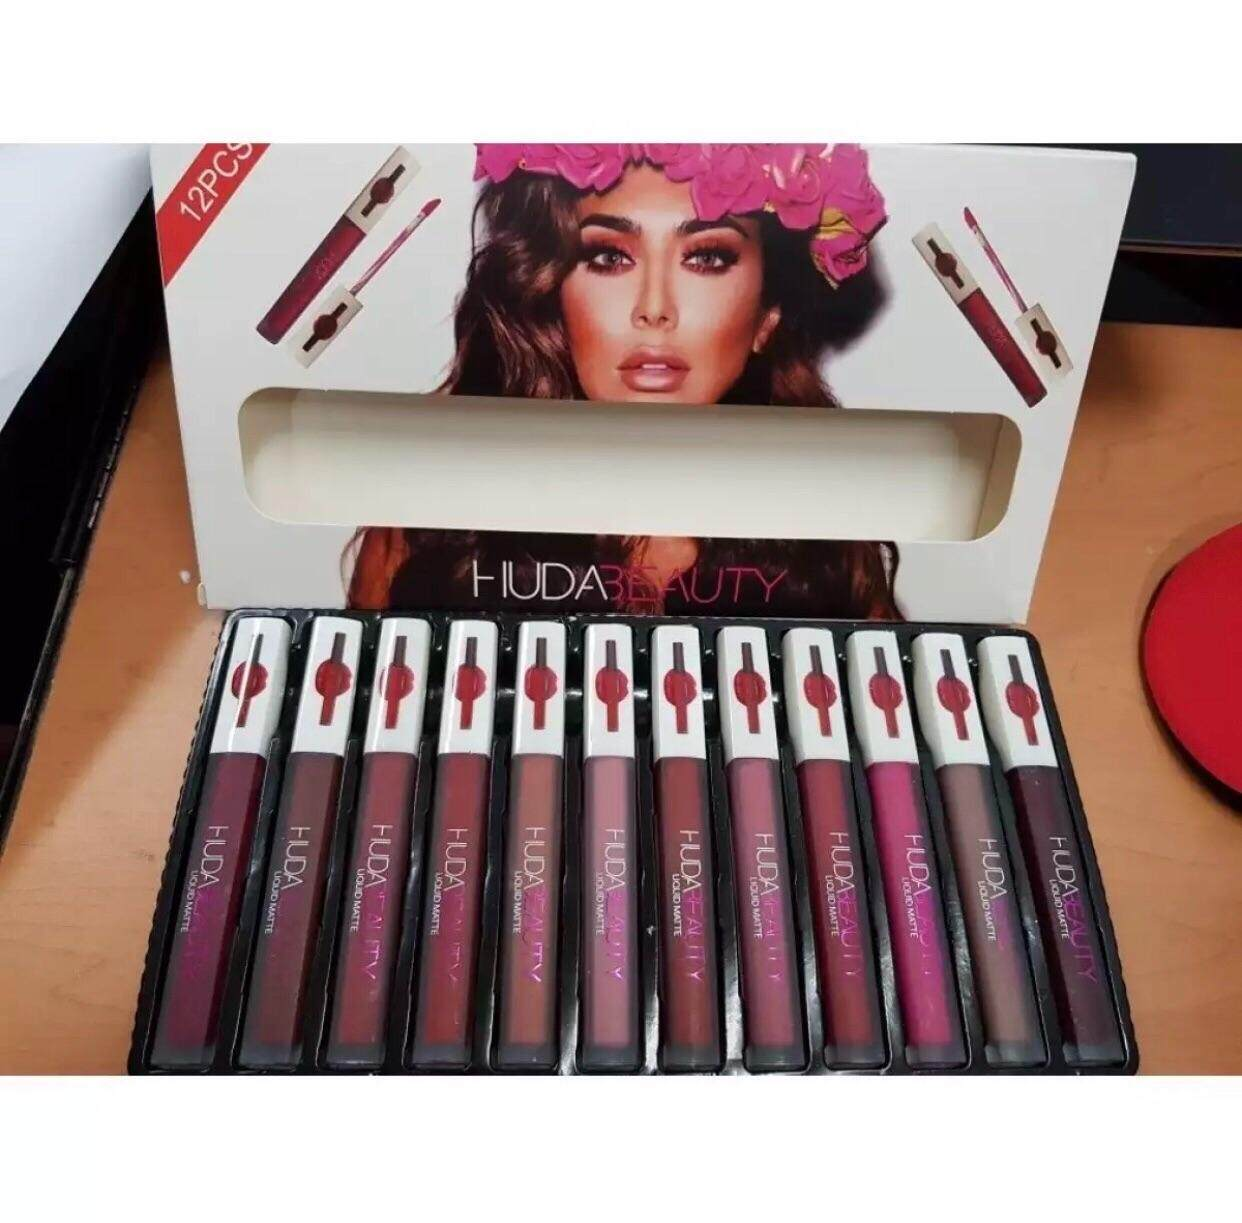 Huda 12pcs Liquid Matte Lipsticks White Box + Free Gift